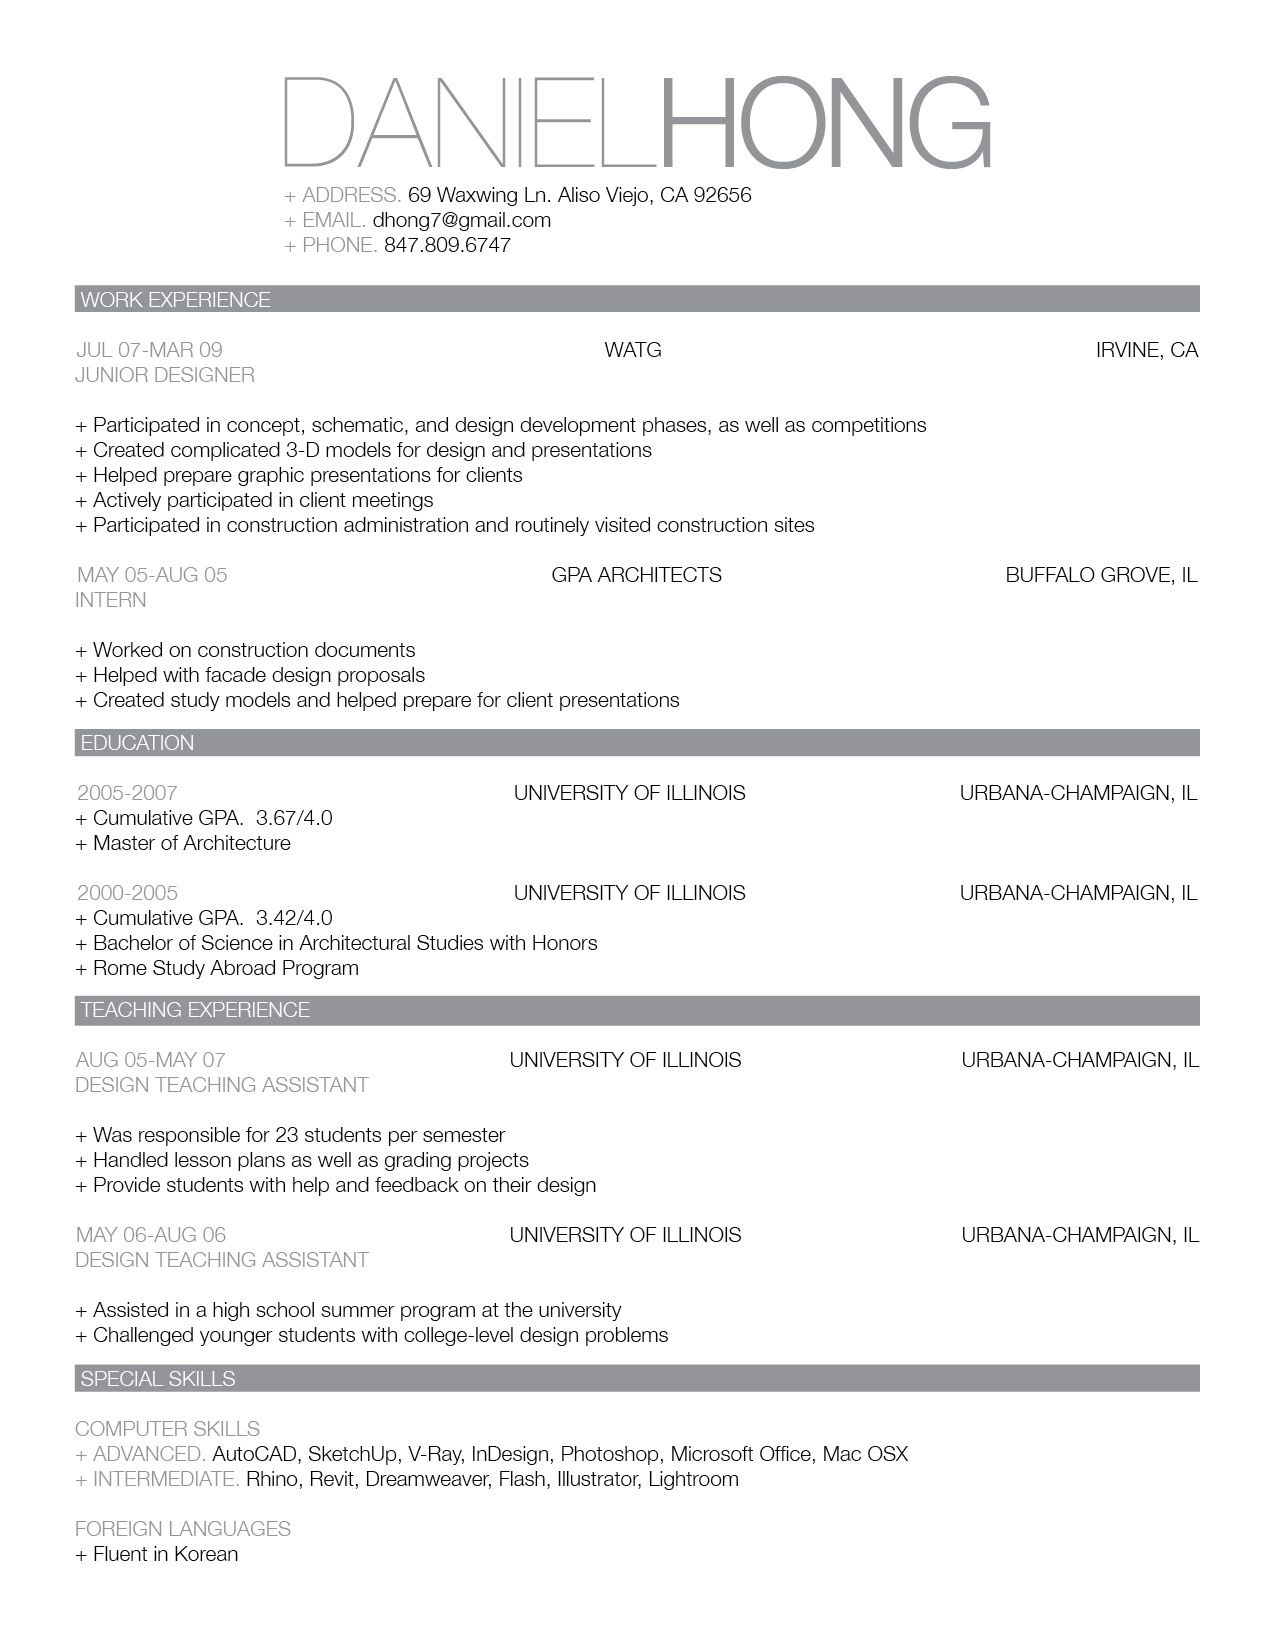 Updated CV and Work Sample | Professional resume, Sample resume ...